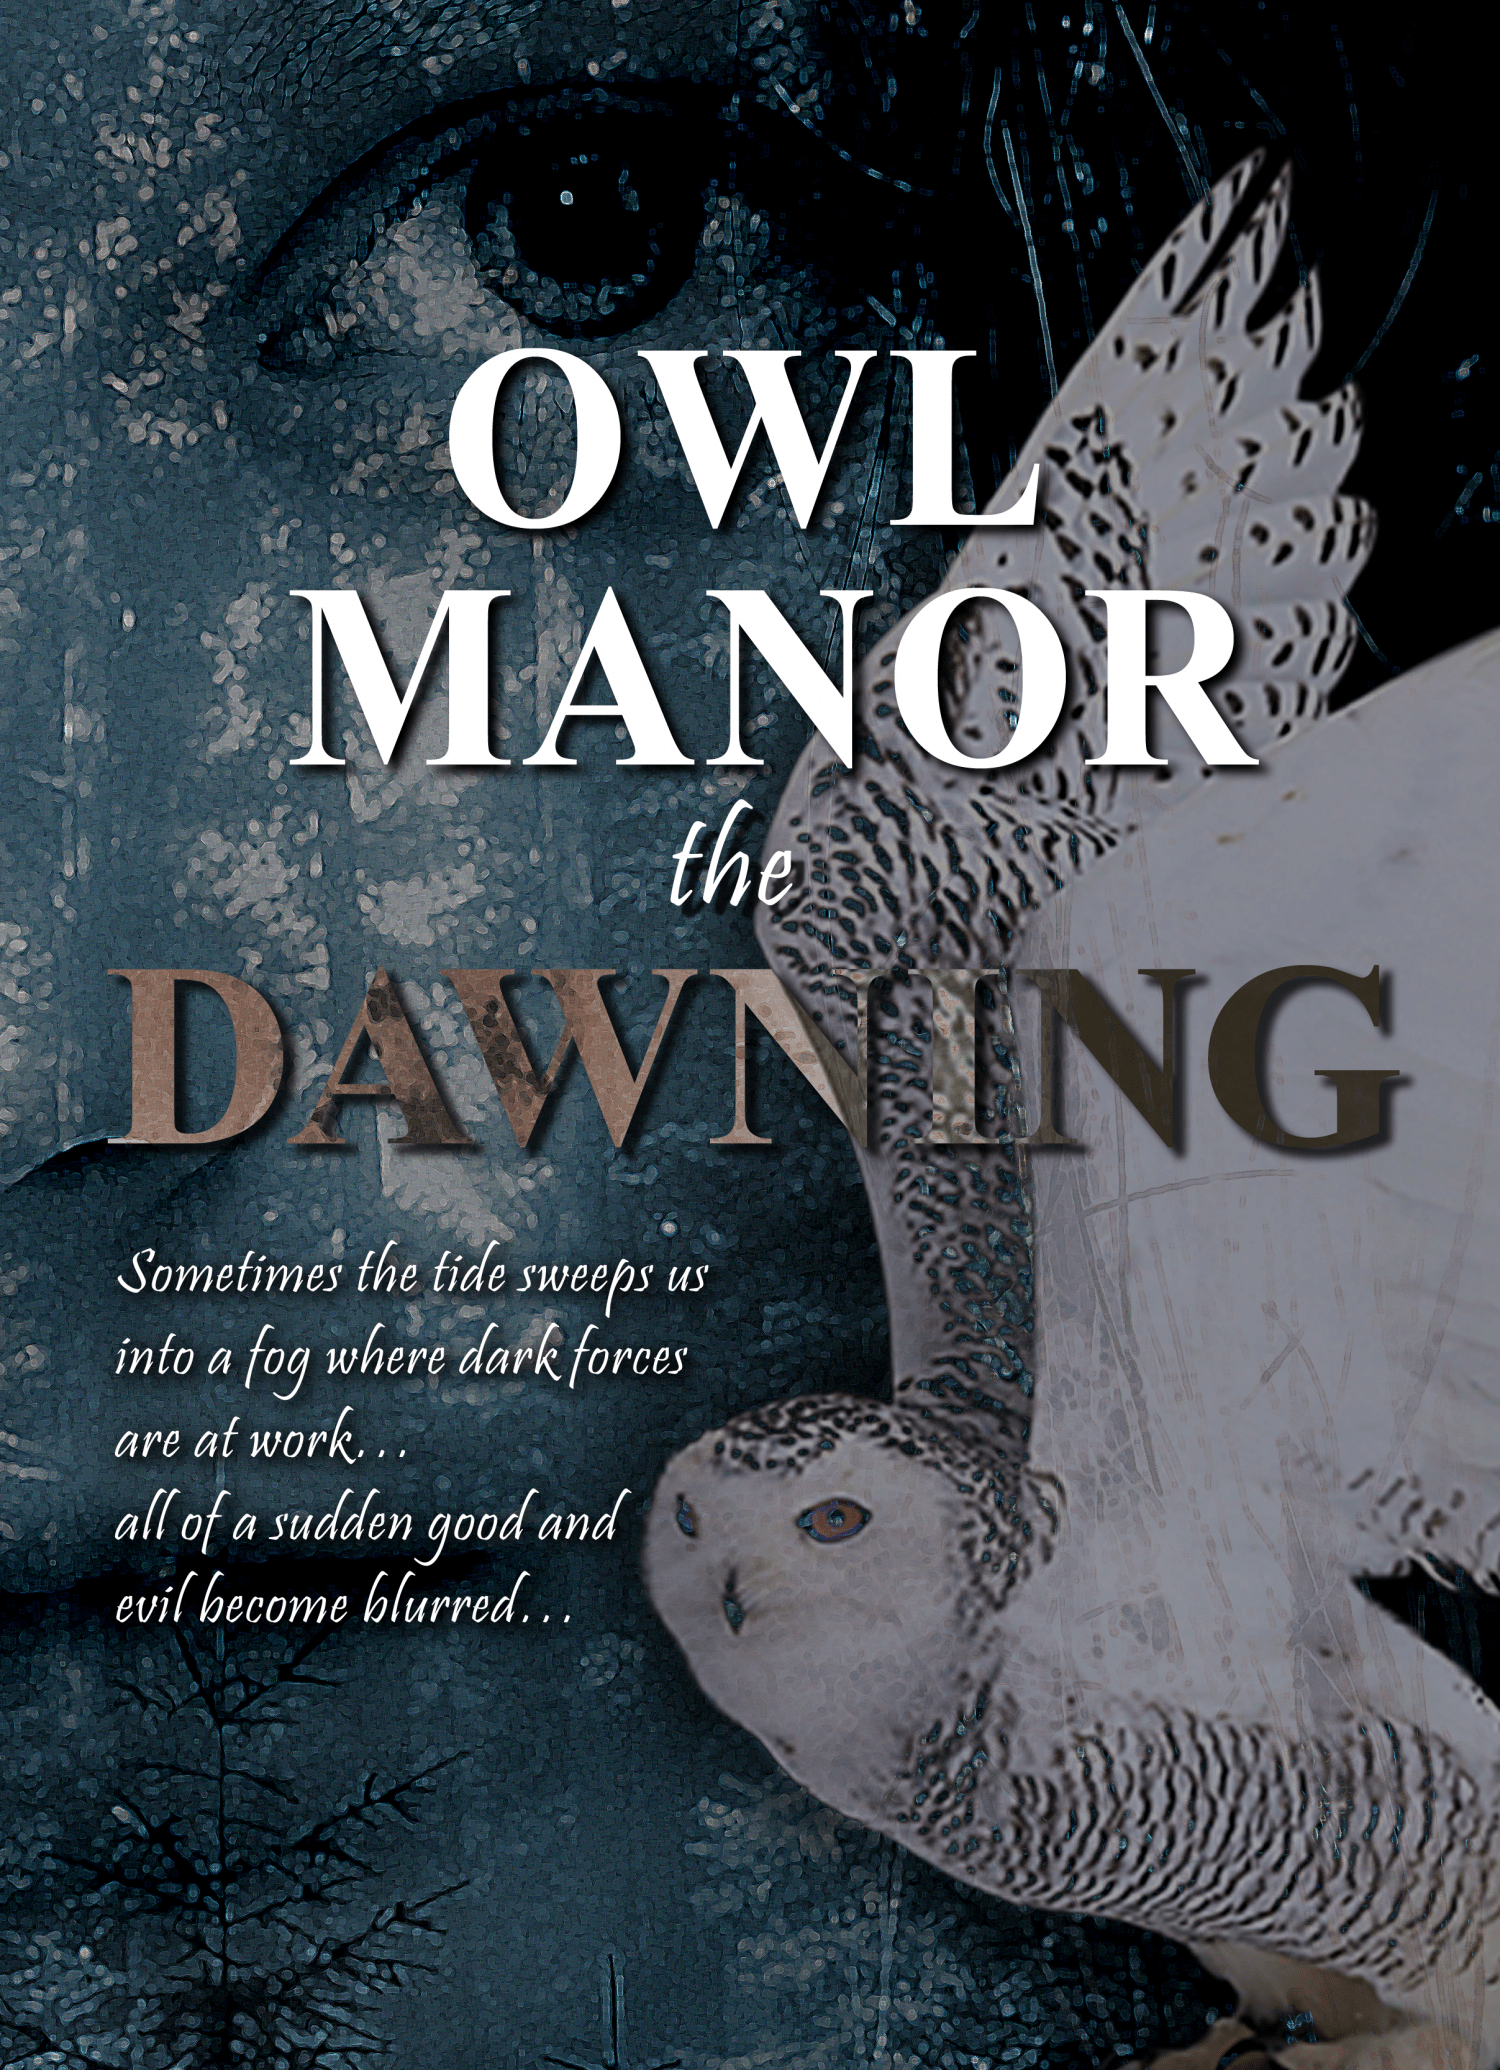 Owl Manor - the Dawning